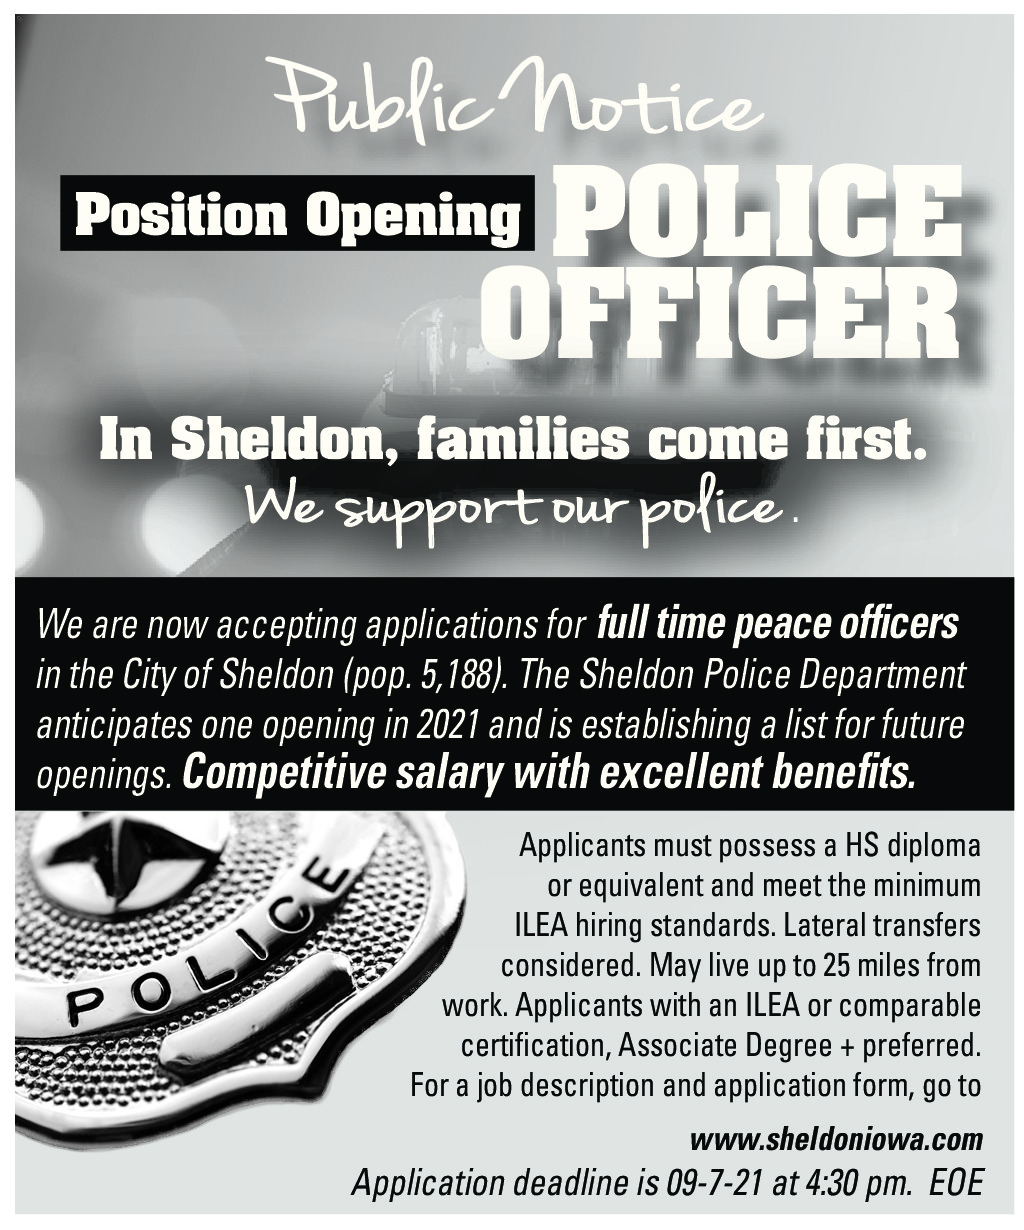 Now Accepting Applications for Full-Time Officer